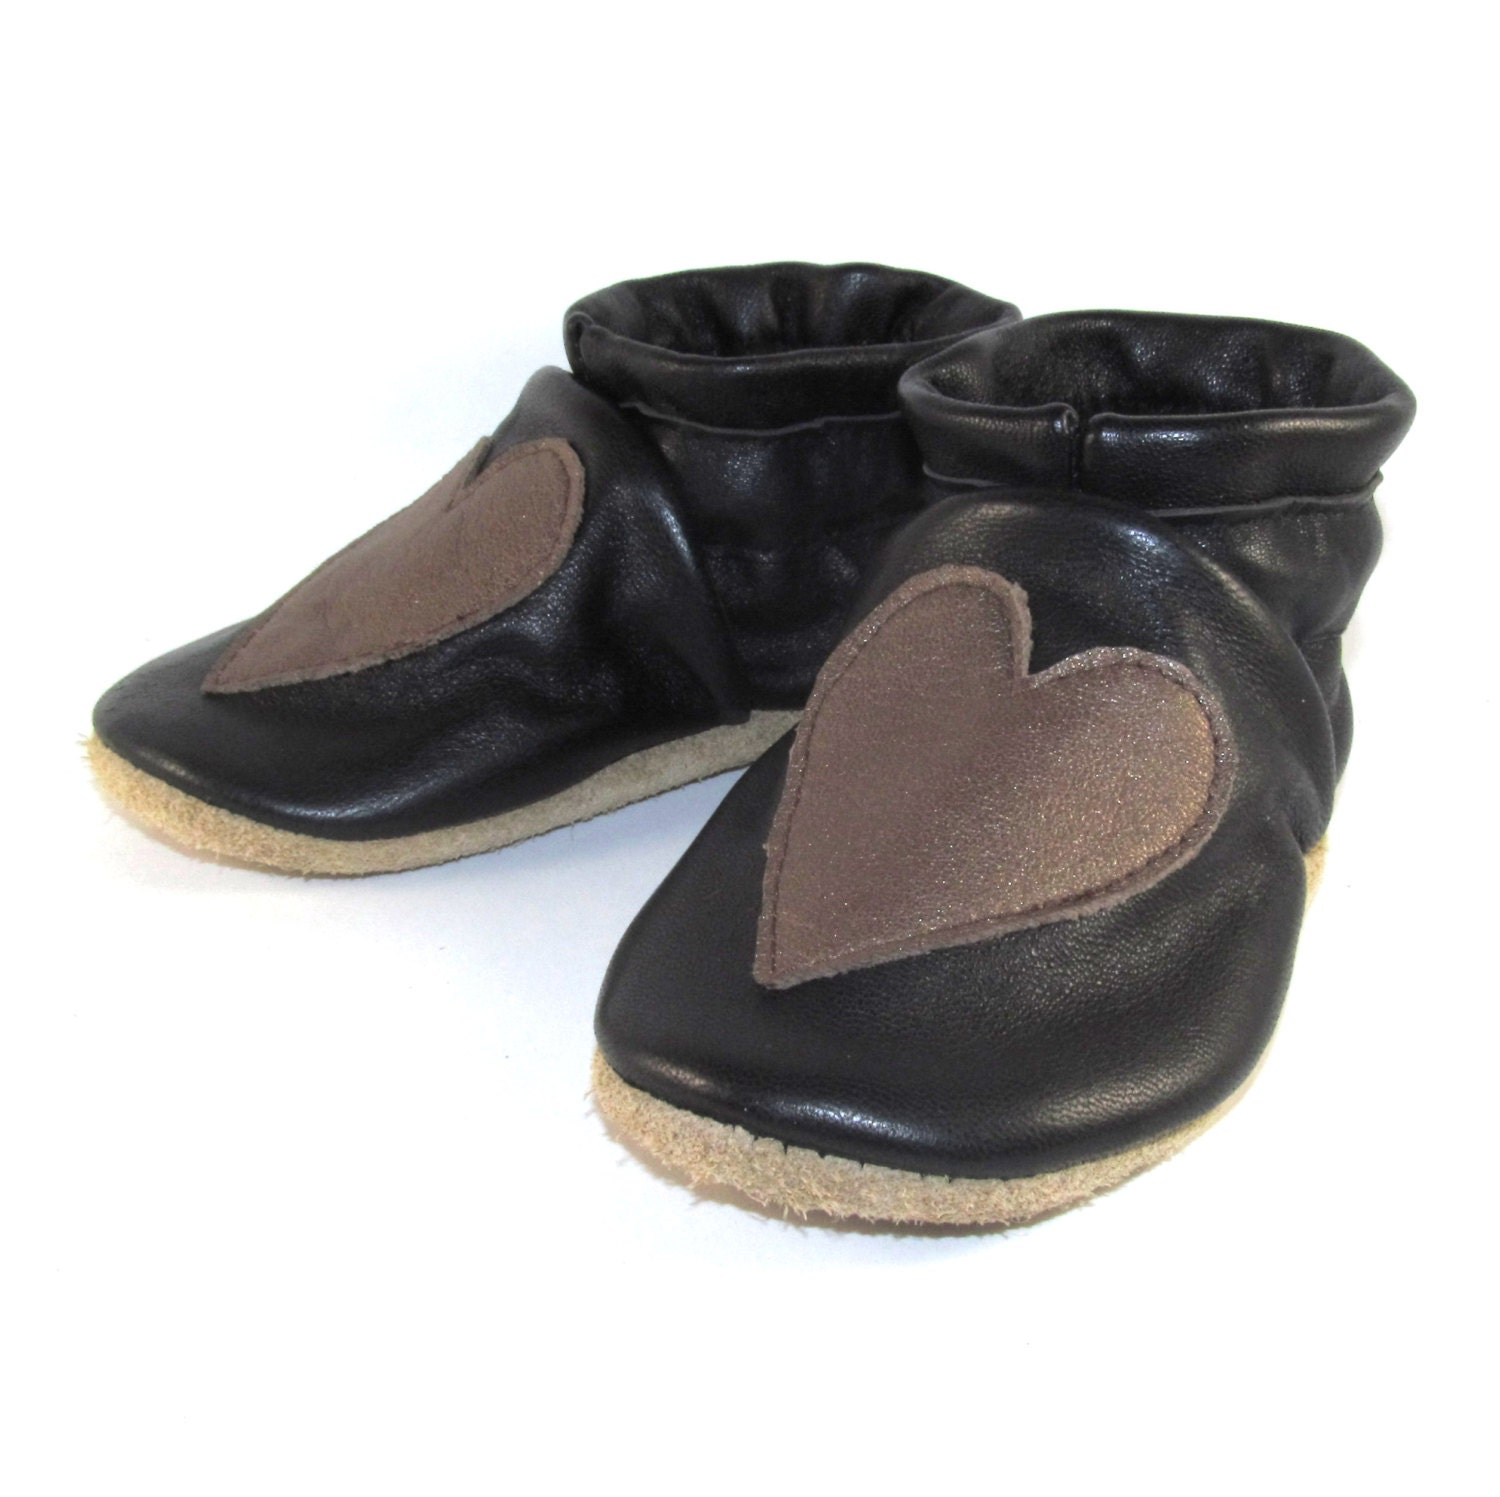 soft sole leather hearts baby shoes 12 to 18 month eco